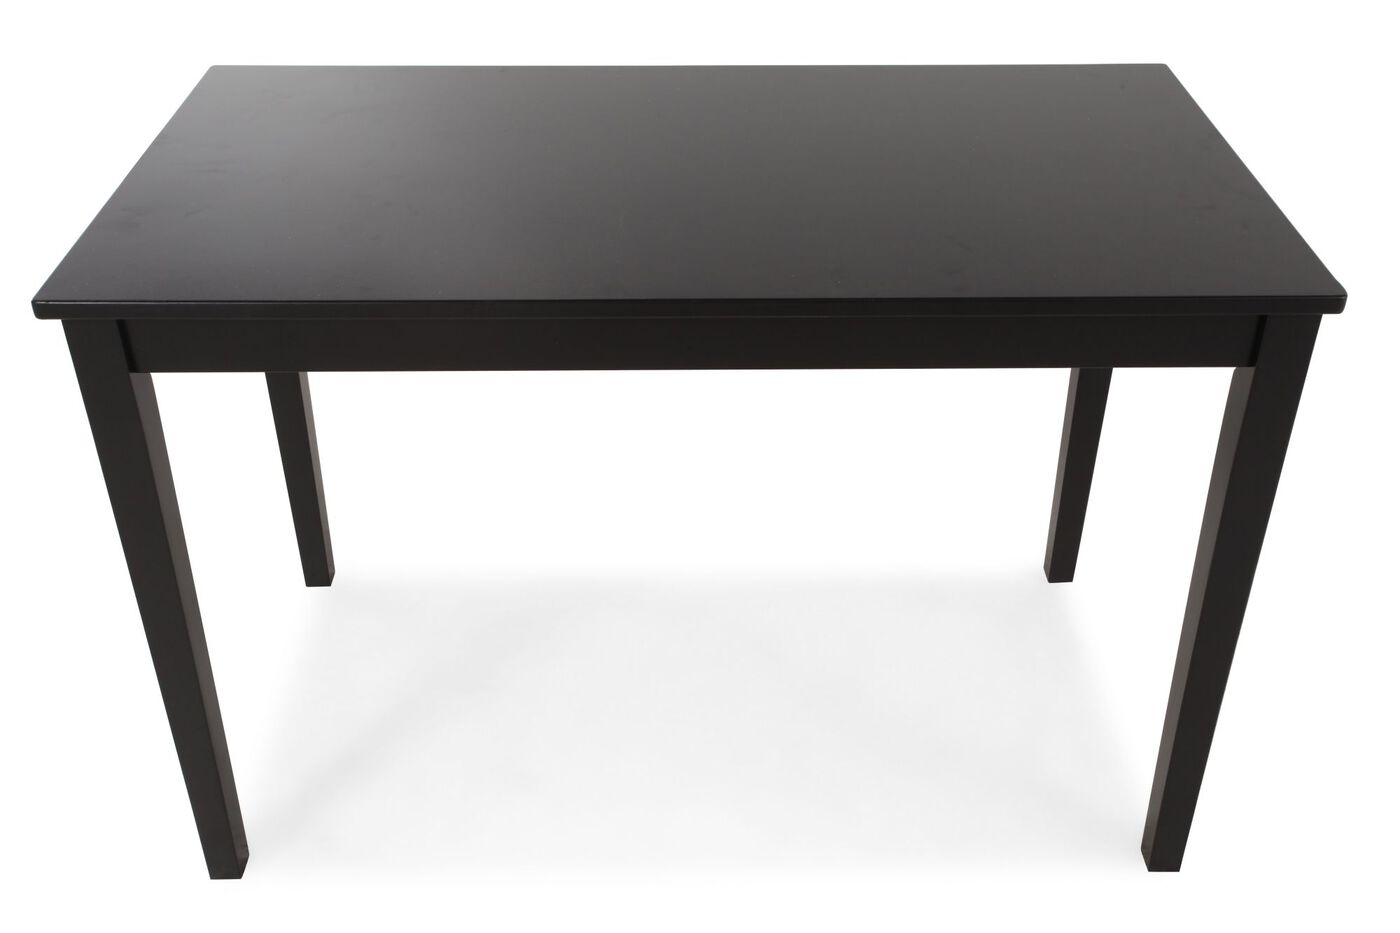 Contemporary rectangular dining table mathis brothers for Contemporary rectangular dining table